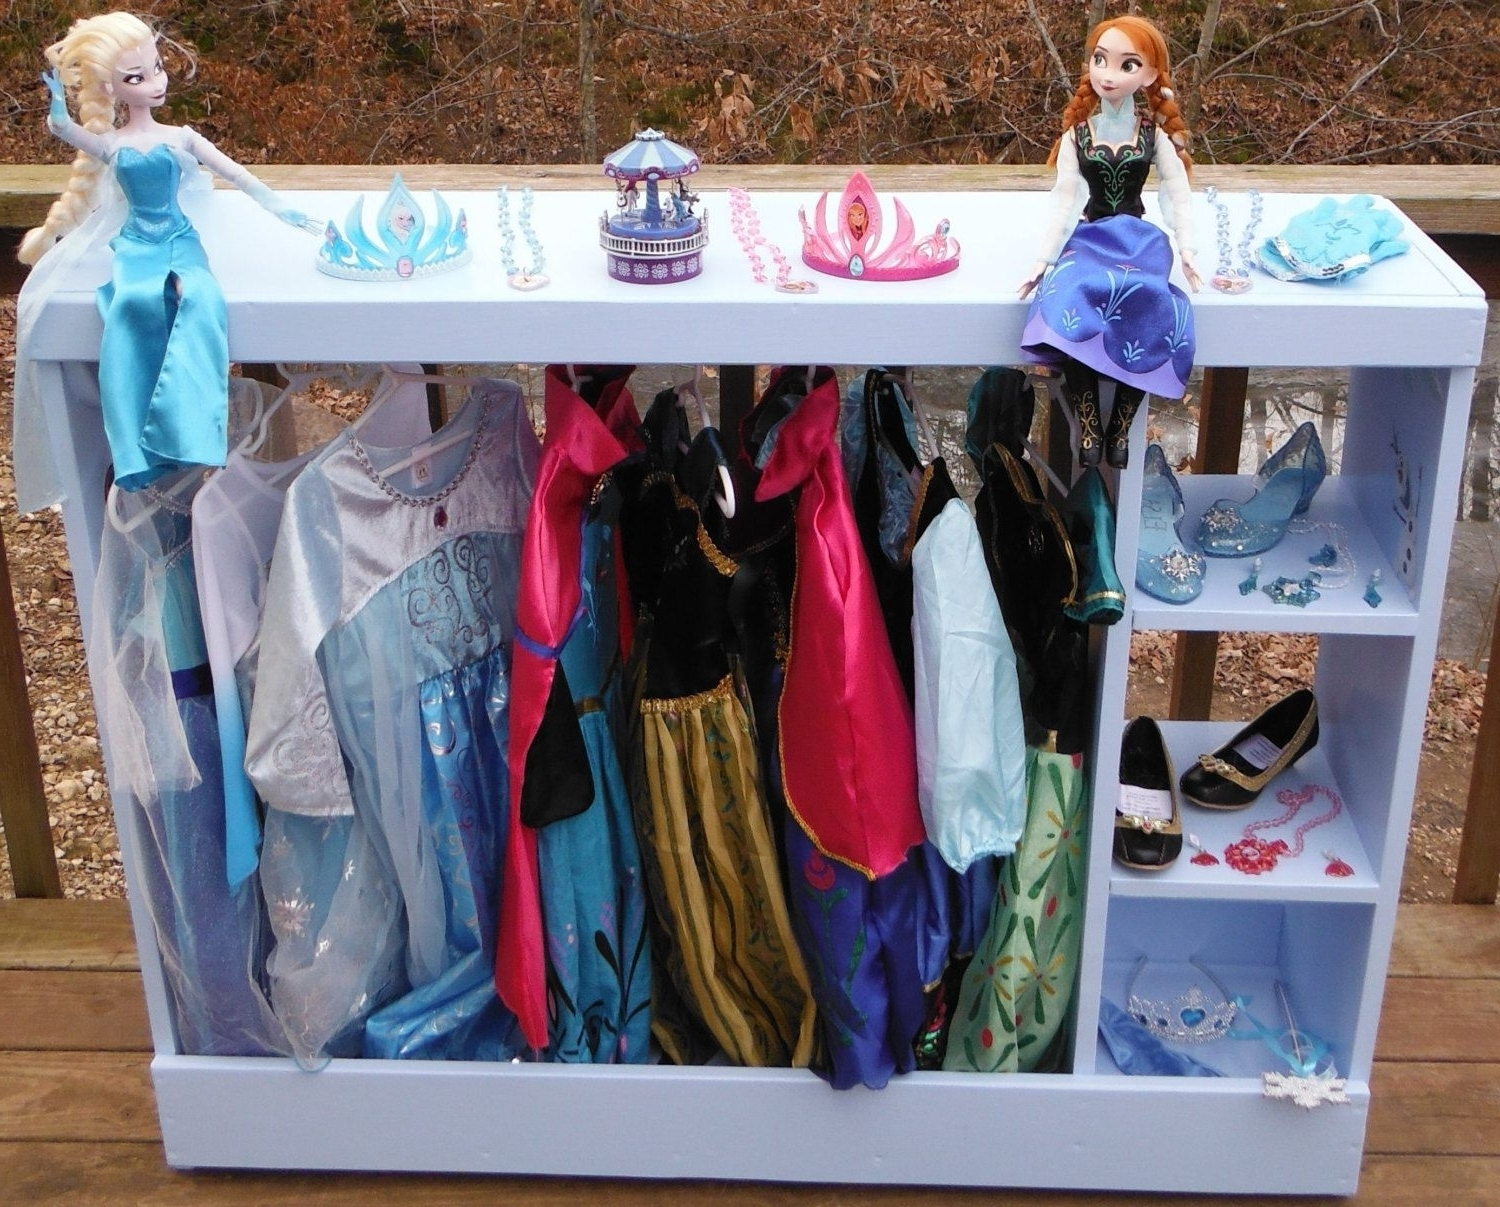 Kids Dress Up Wardrobes Closet With Regard To Trendy Cool Attractive Design Kids Dress Up Closet – Closet & Wadrobe (View 10 of 15)